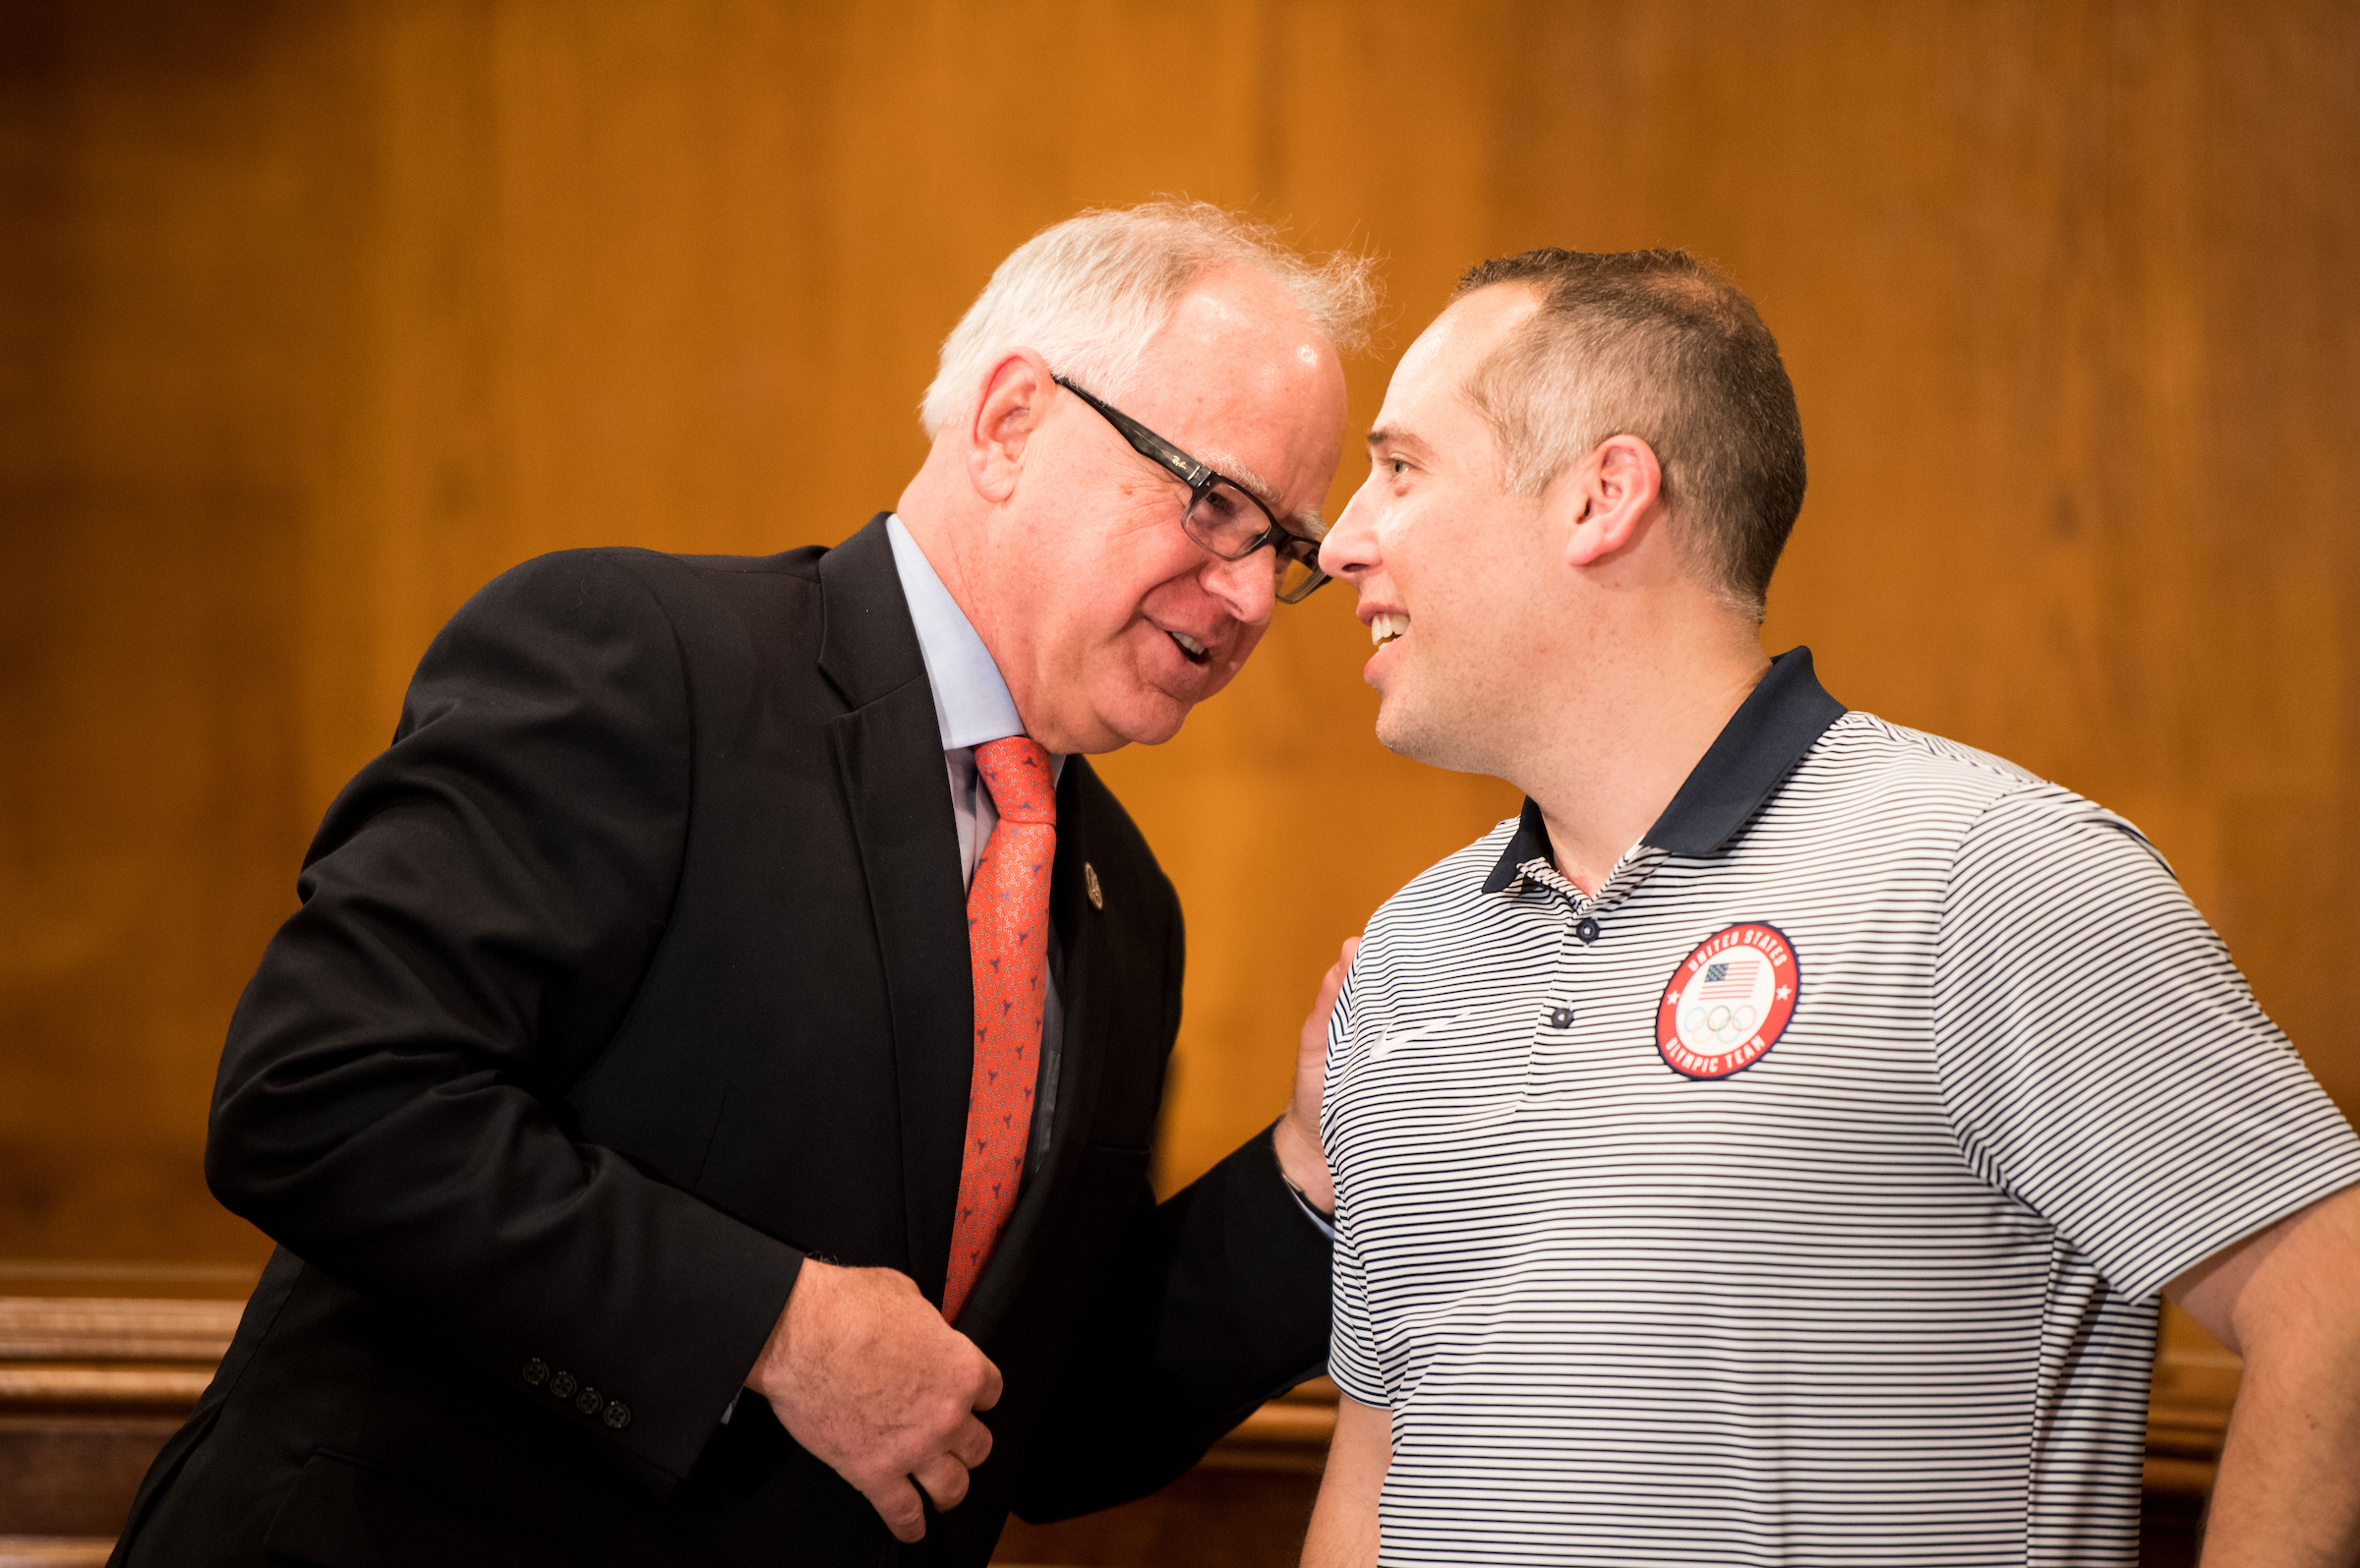 Rep. Tim Walz, D-Minn., left, speaks with judge Phil Drobnick, coach of the US Olympic gold medal curling team, at the eighth annual Minnesota Congressional Delegation Hotdish Competition in the Dirksen Senate Office Building on Wednesday, April 25, 2018. (Photo By Bill Clark/CQ Roll Call)